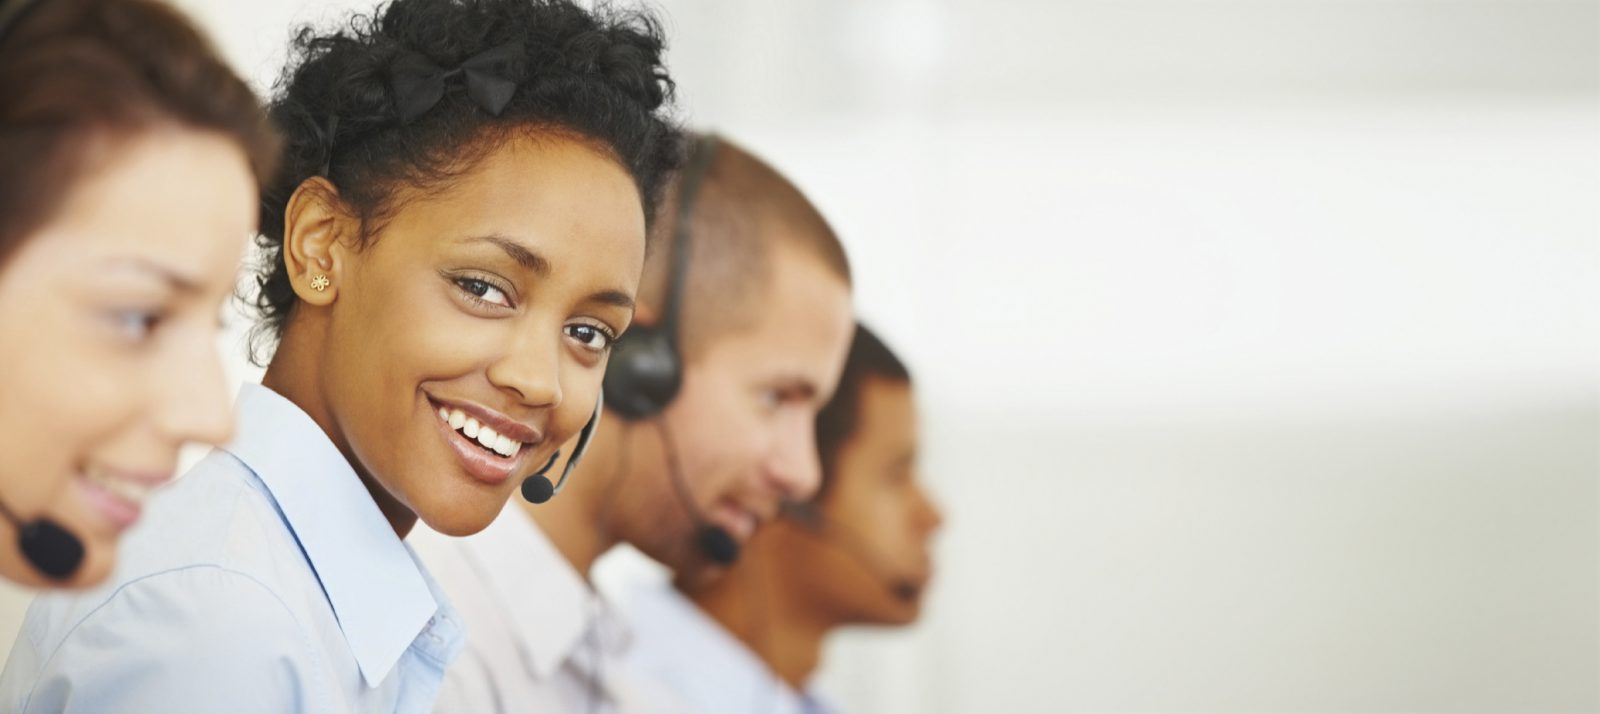 Smiling call centre employees